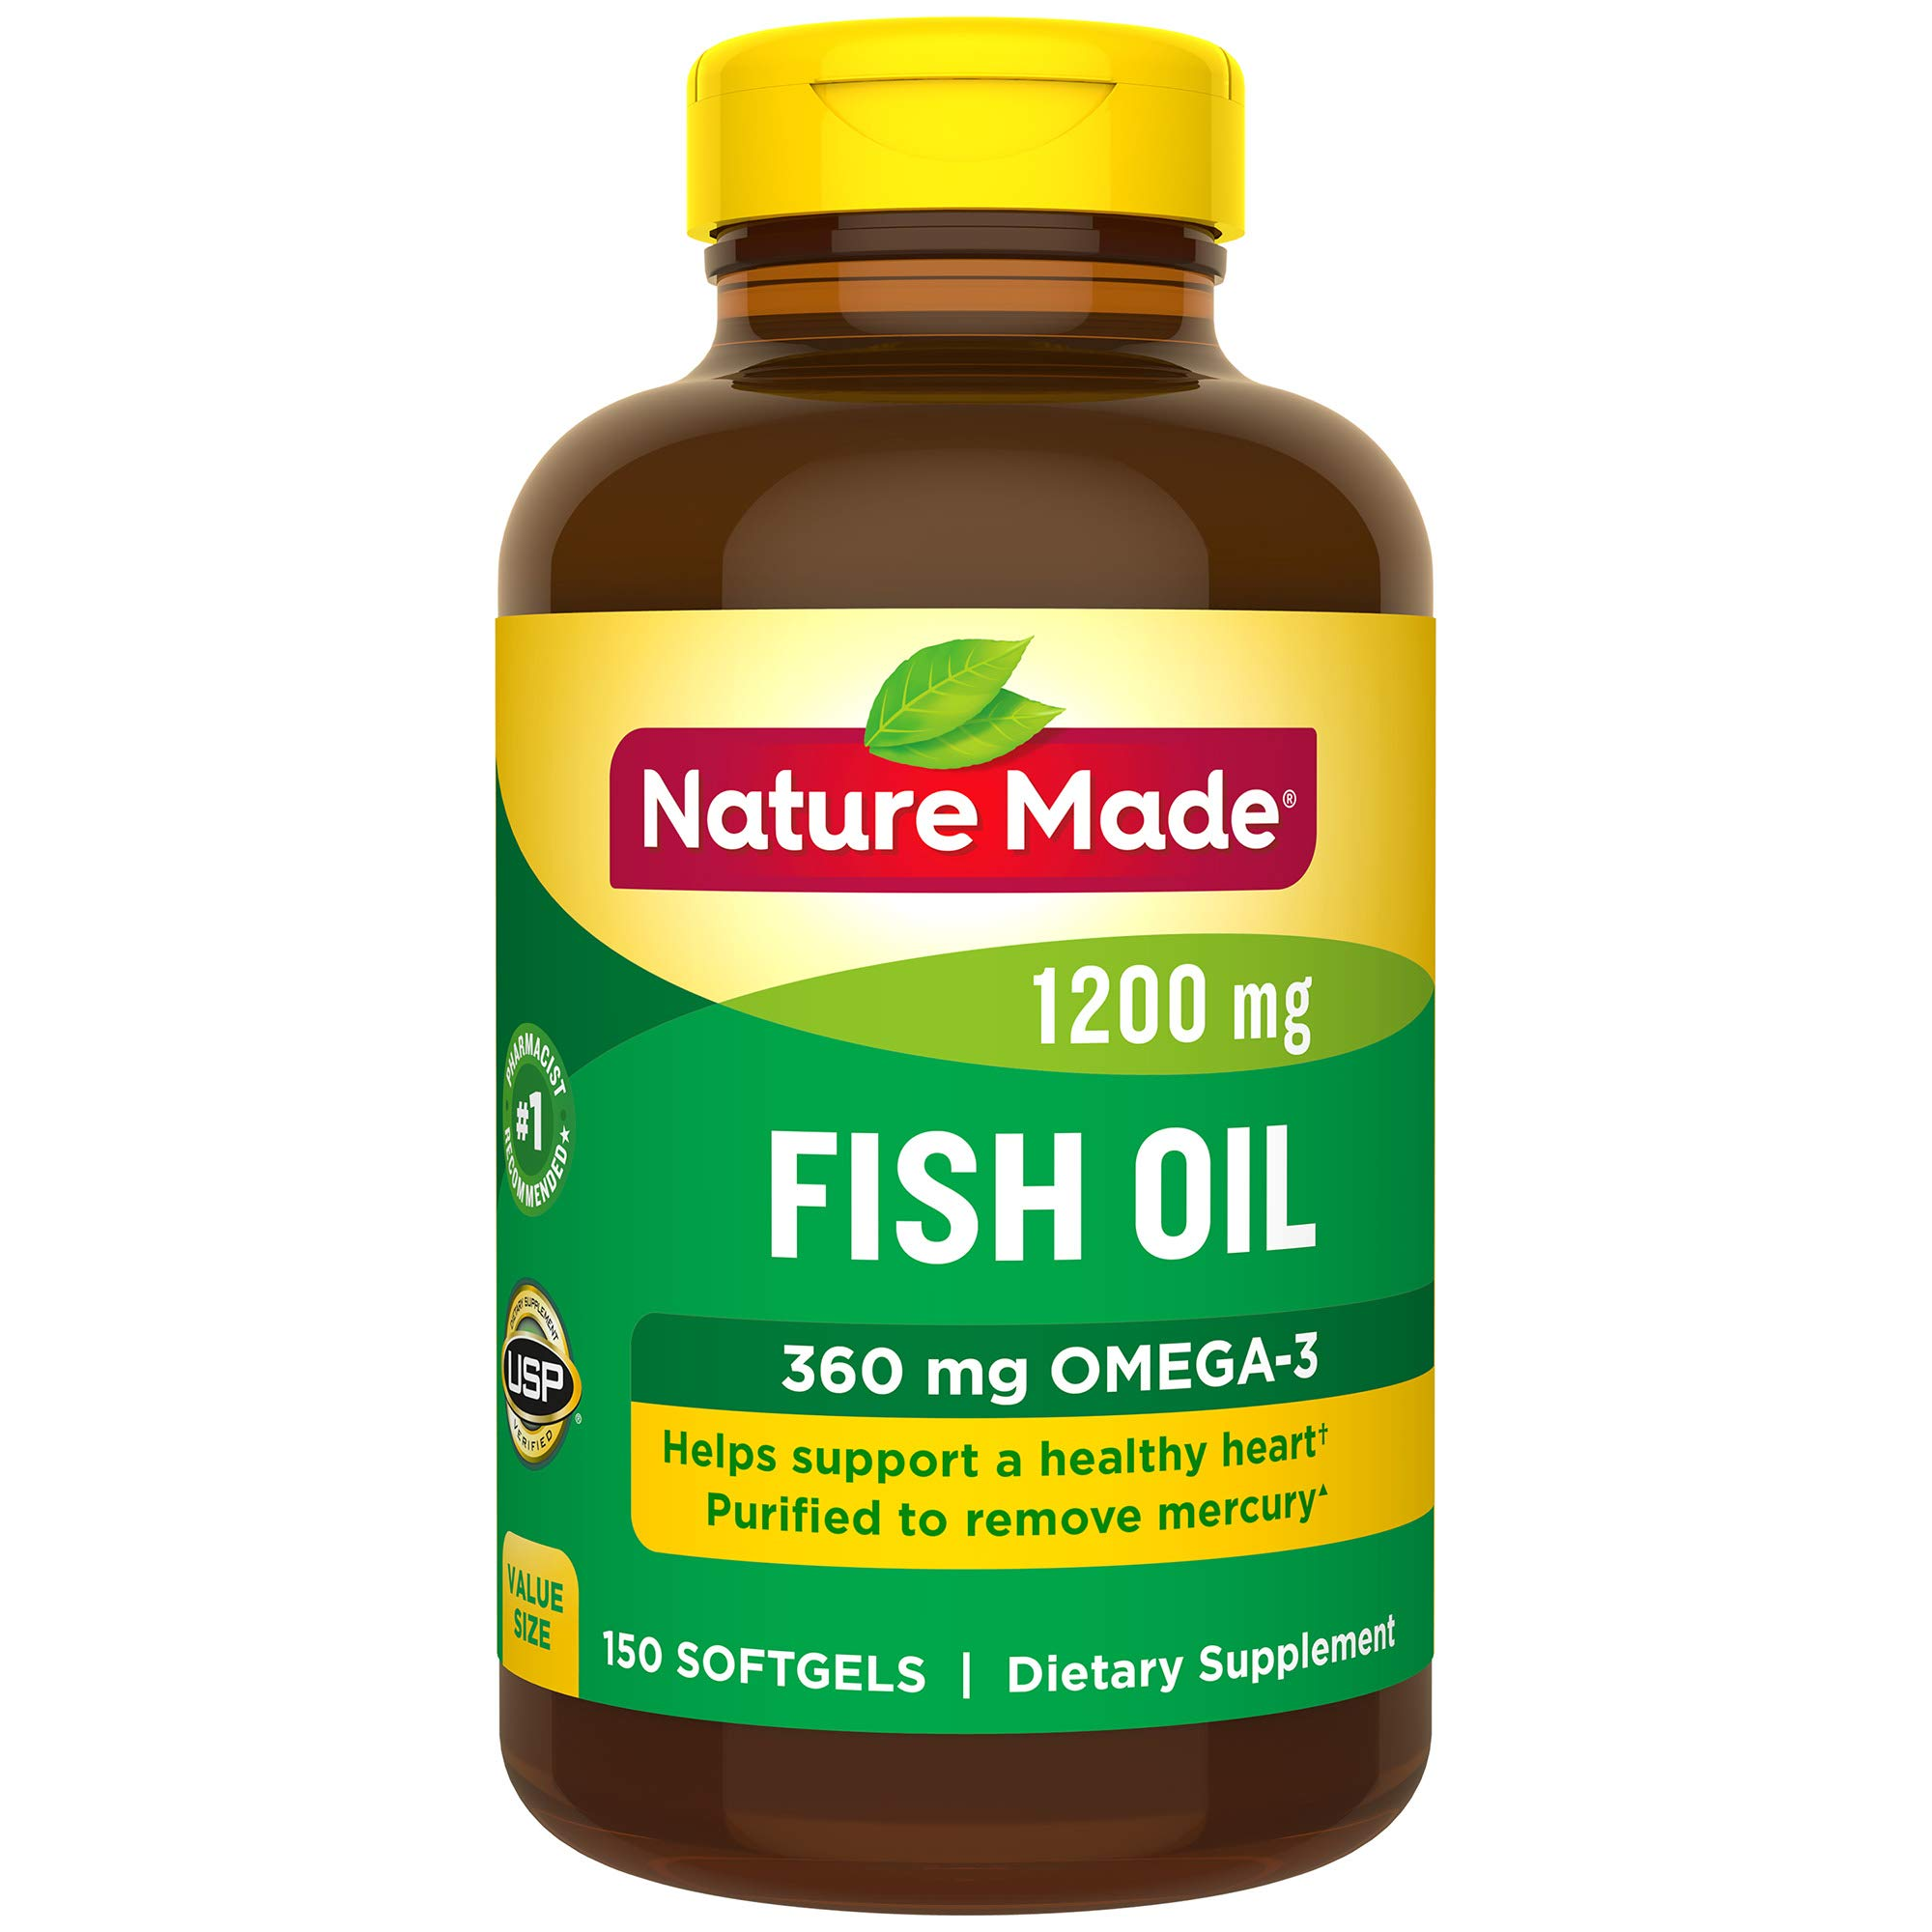 Nature Made Fish Oil 1200 mg Softgels, 150 Count Value Size for Heart Health† (Packaging May Vary) by Nature Made